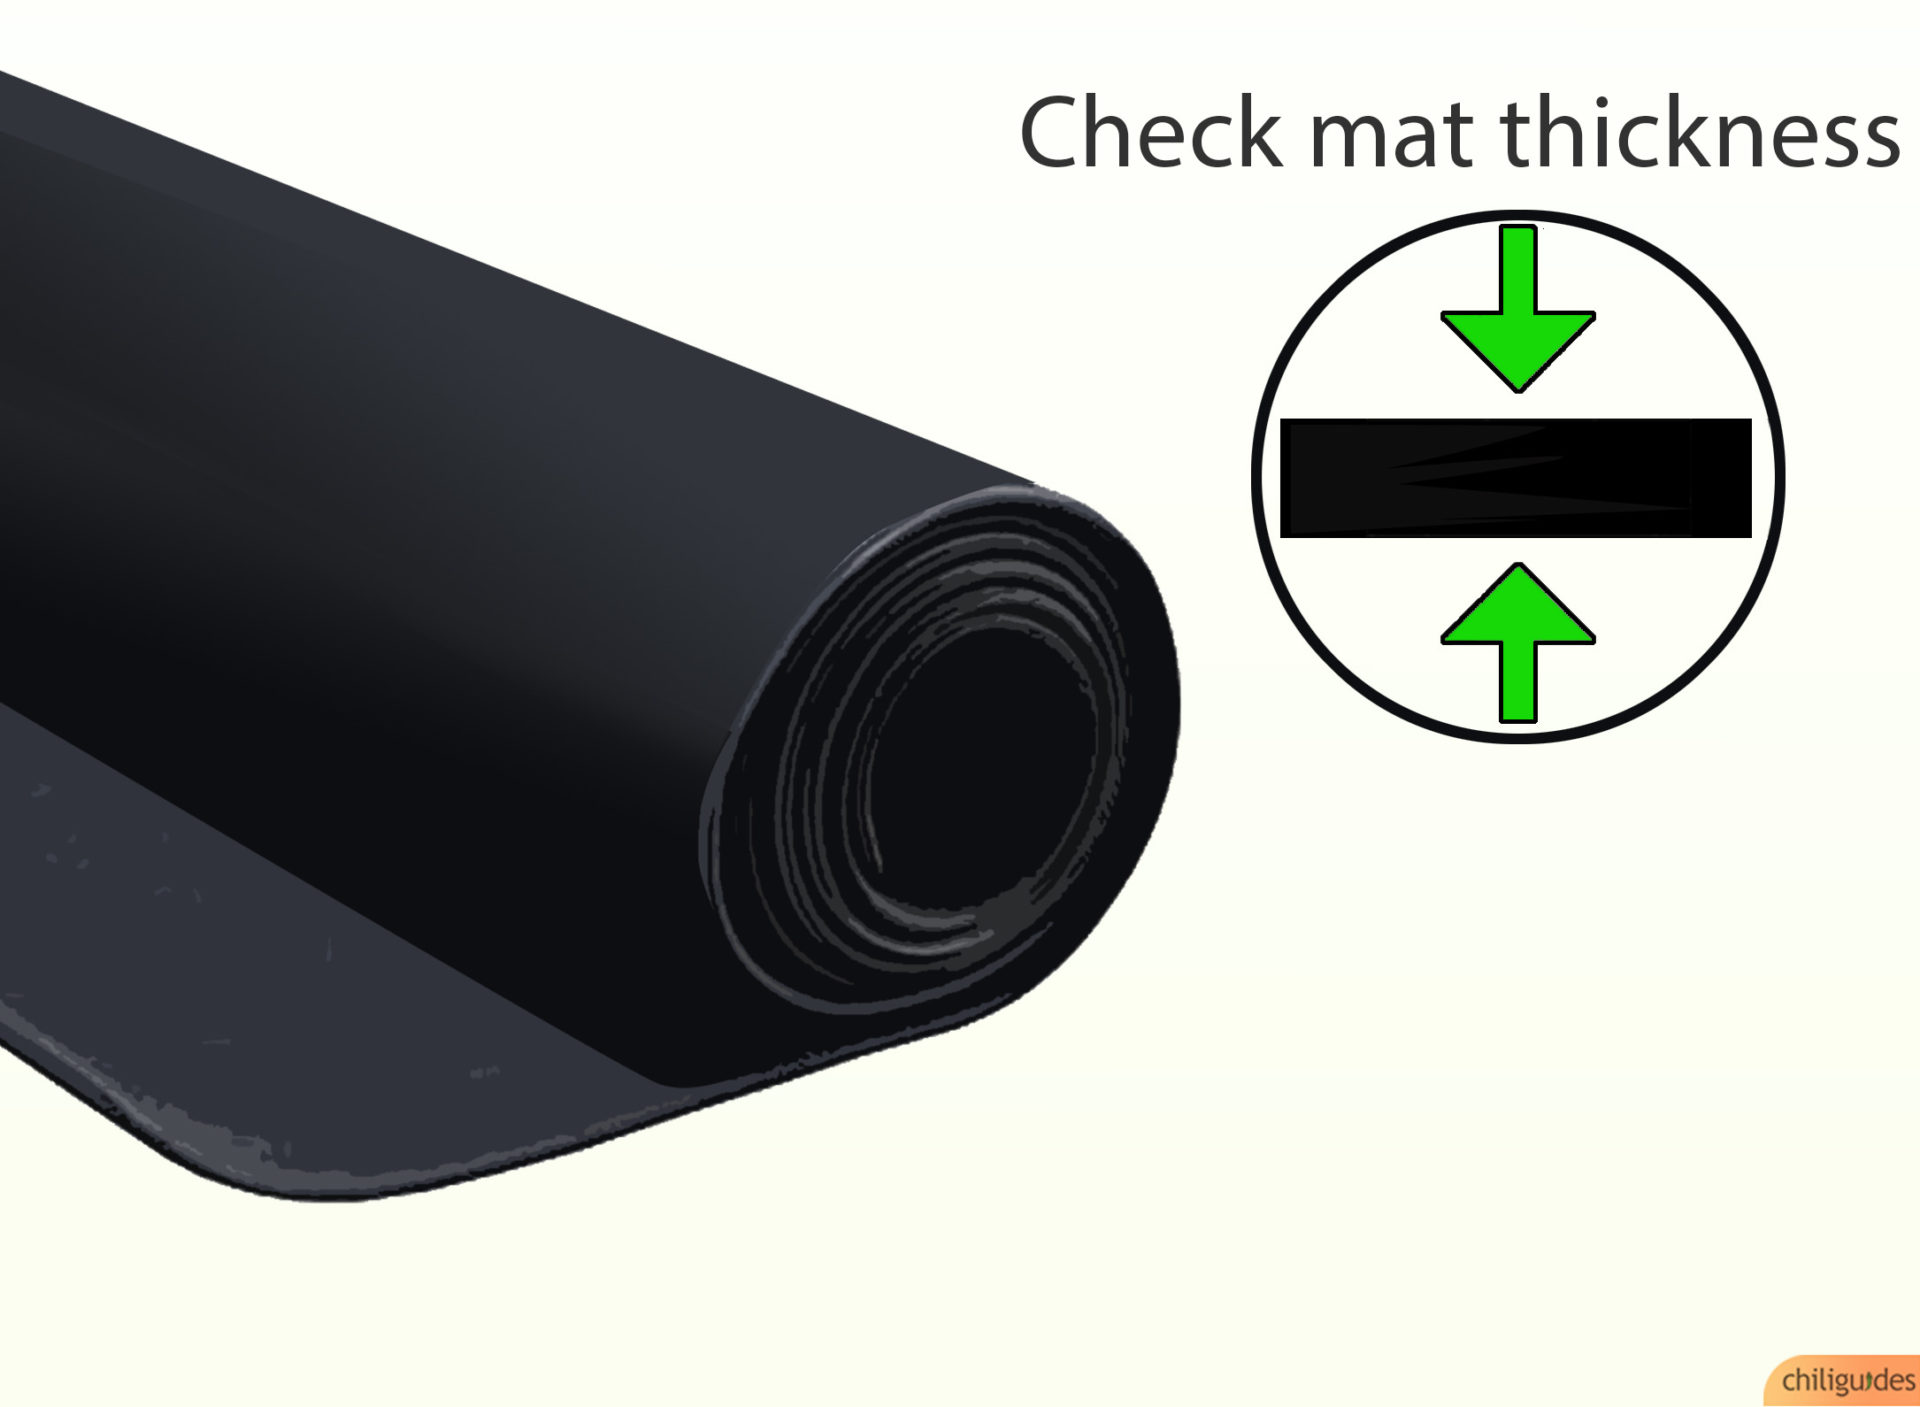 Thick mats are more effective than thin mats.